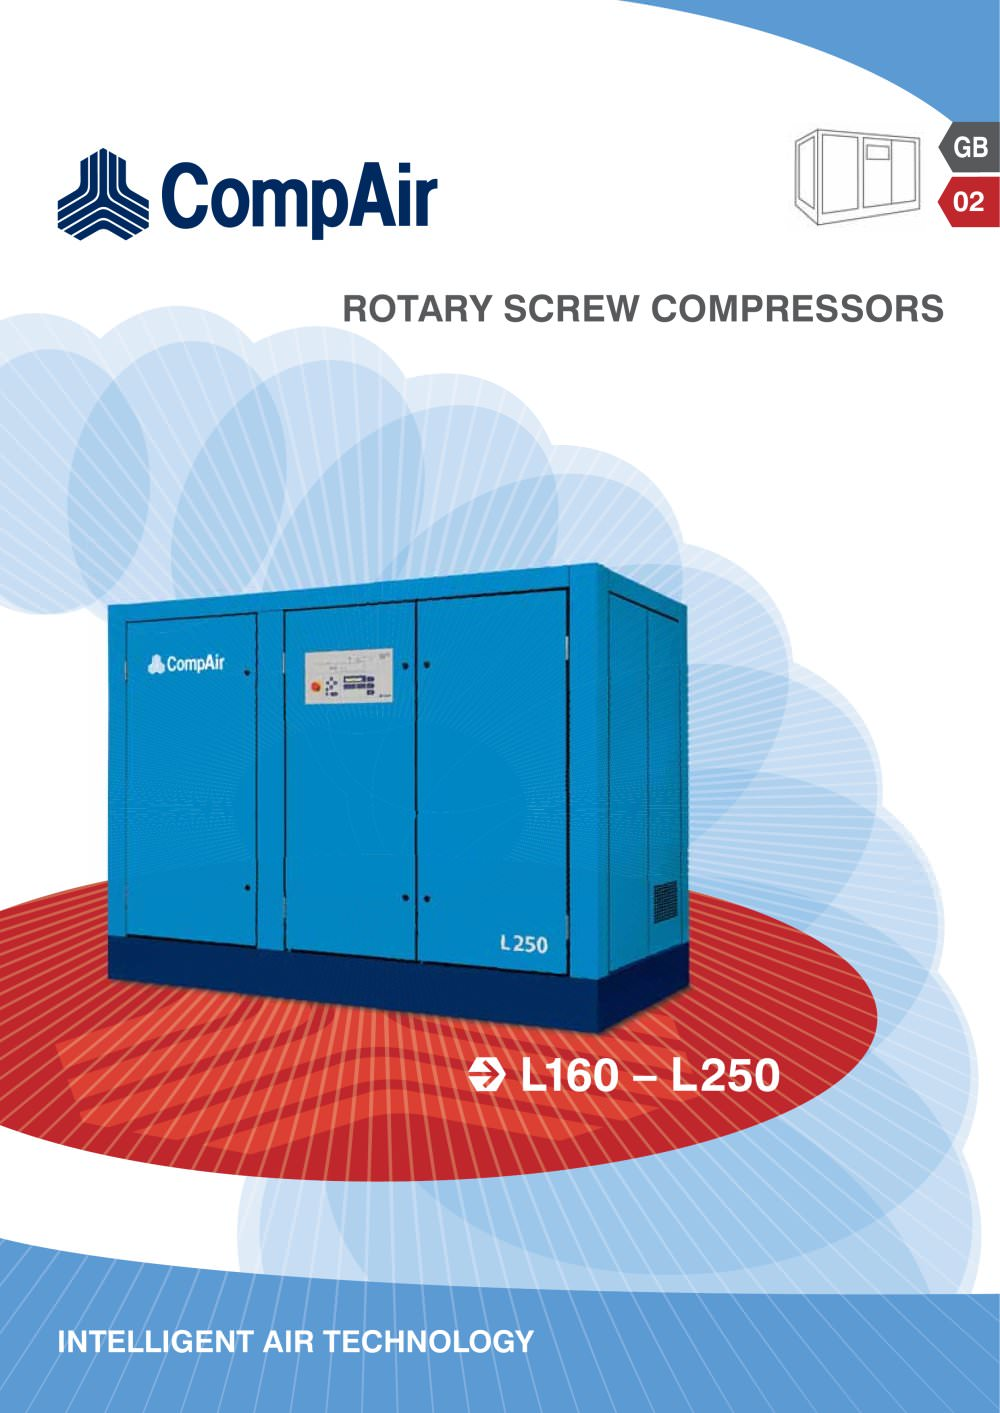 L160 - L250, RS compressors - 1 / 4 Pages